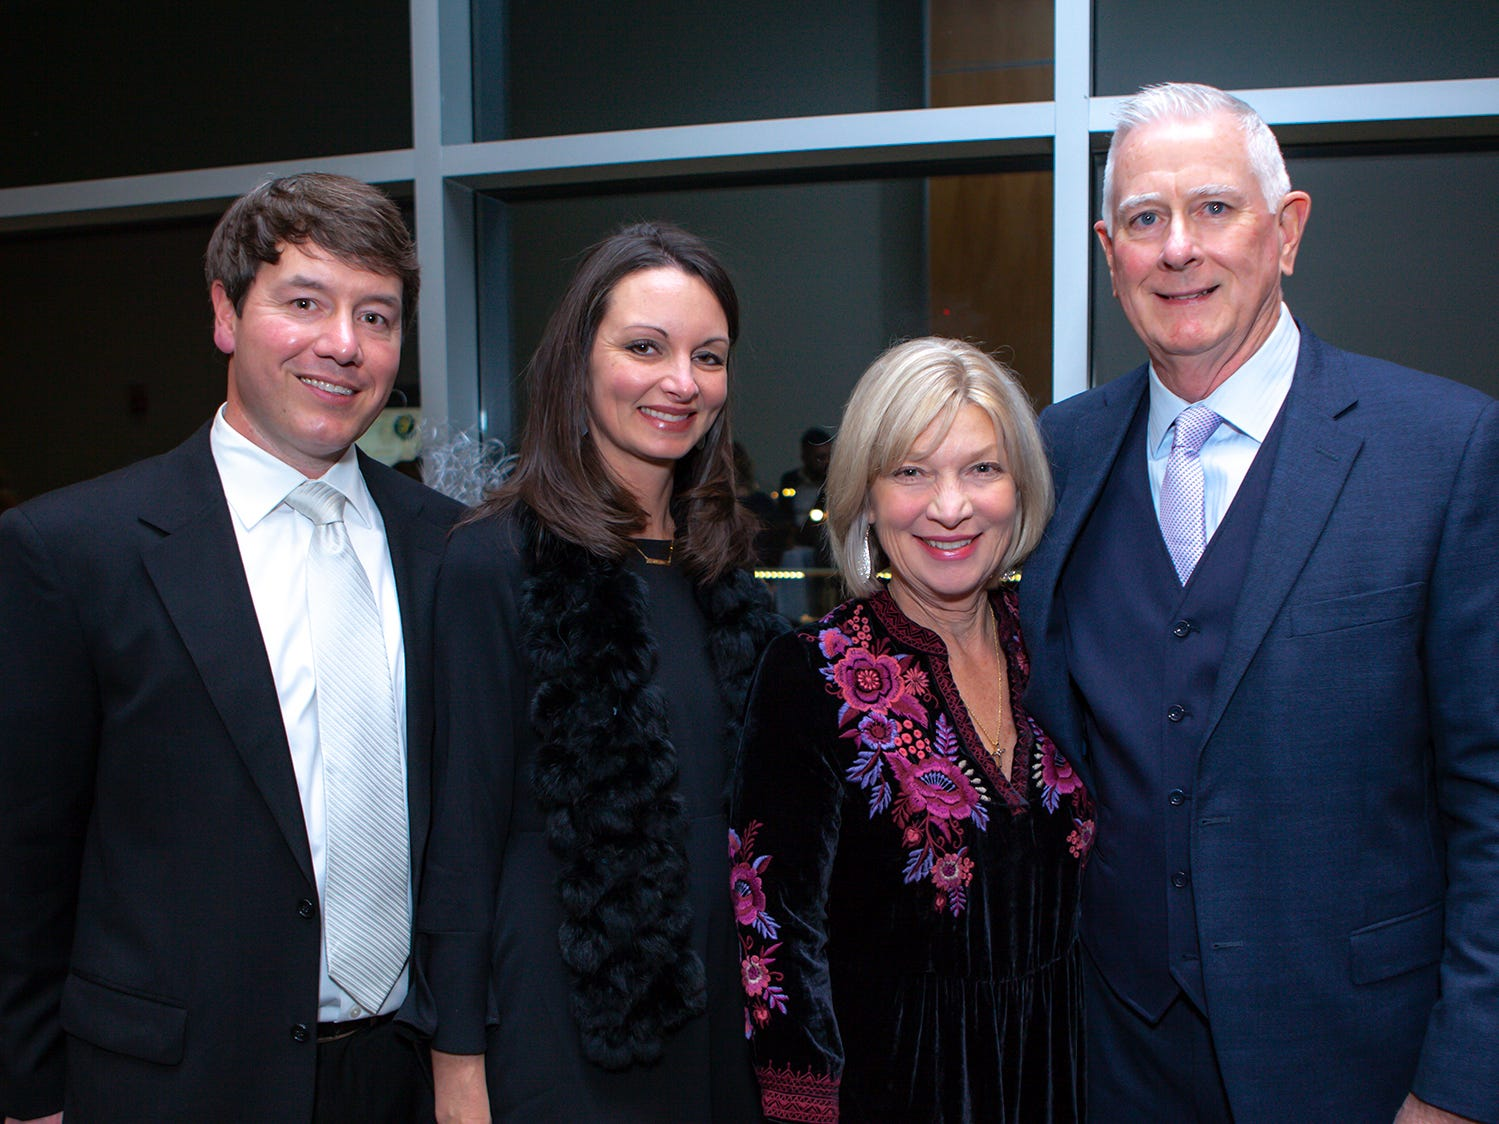 Kevin and Amy Grisham with Zasa and Wes Ballard at the 2019 Excellence in Education Gala, hosted by the City Schools Foundation on Friday, Jan. 25, 2019 at Stones River Country Club in Murfreesboro.